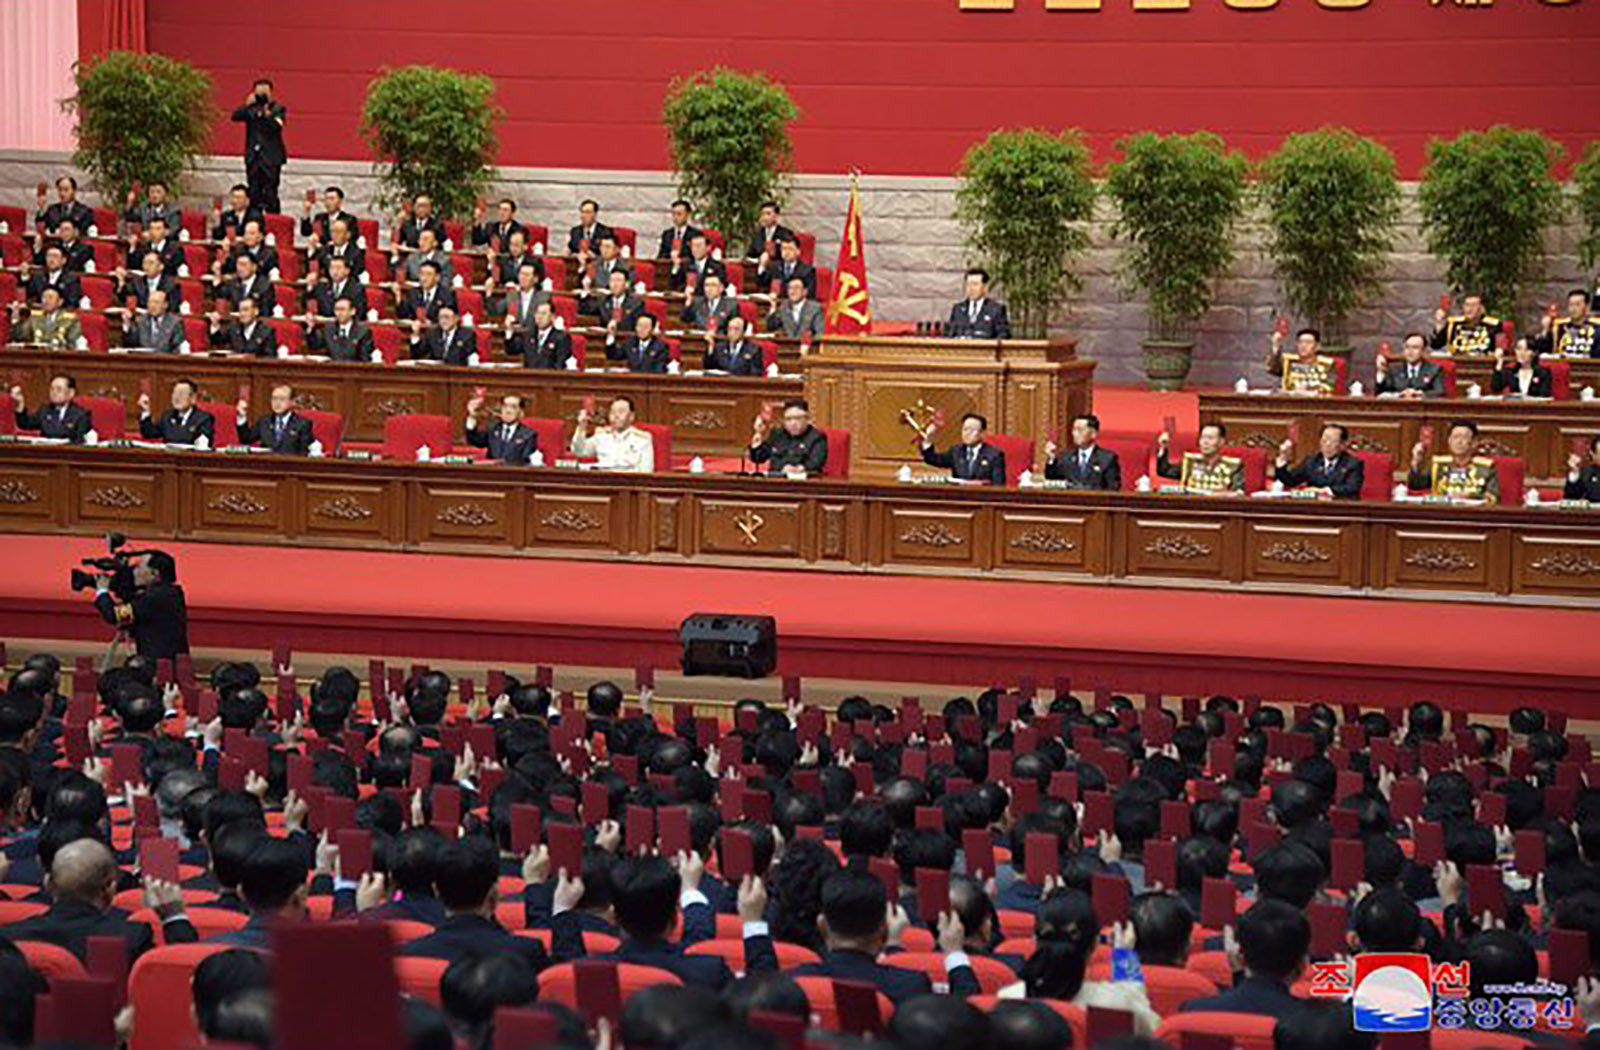 NorthKorean leader Kim Jong Un addressed the opening session of its 8th Workers' Party Congress on Tuesday morning, according to the state-runKorean Central News Agency.